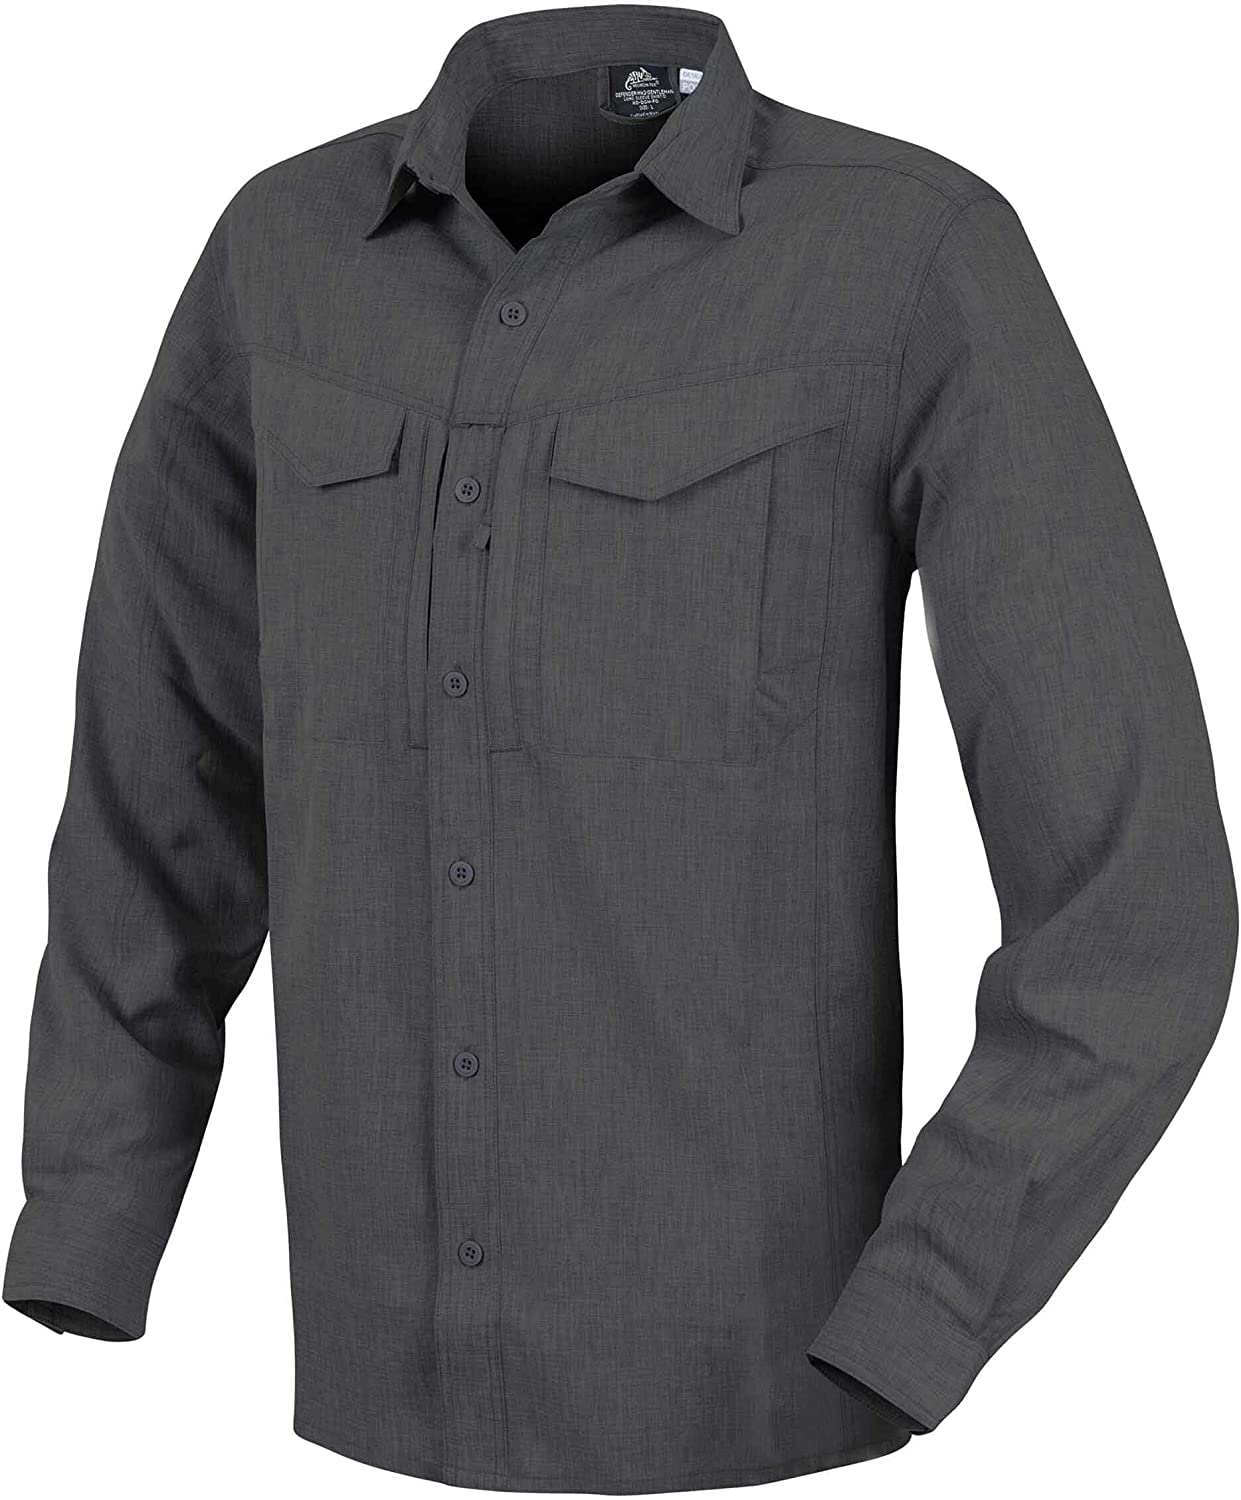 Helikon-Tex Defender Mk2, Gentleman Shirt Urban Line & Tropical Weather Shirt, Outback Line Outdoor and Hiking Tactical Shirt